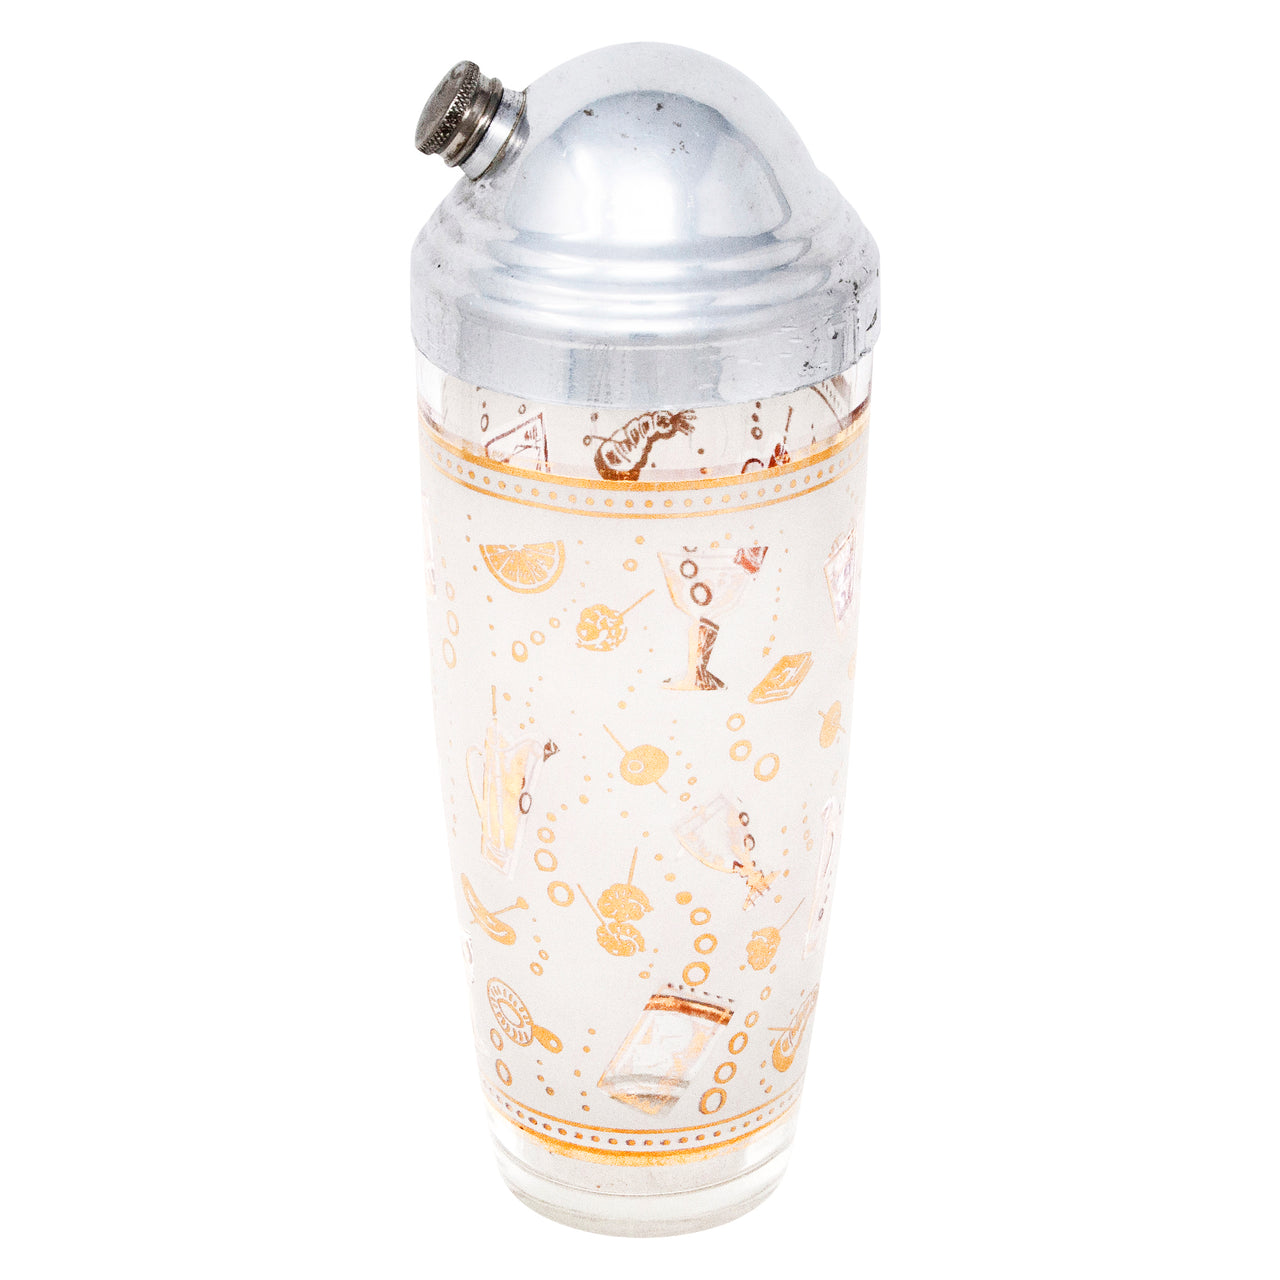 Cocktail Party Motif Cocktail Shaker